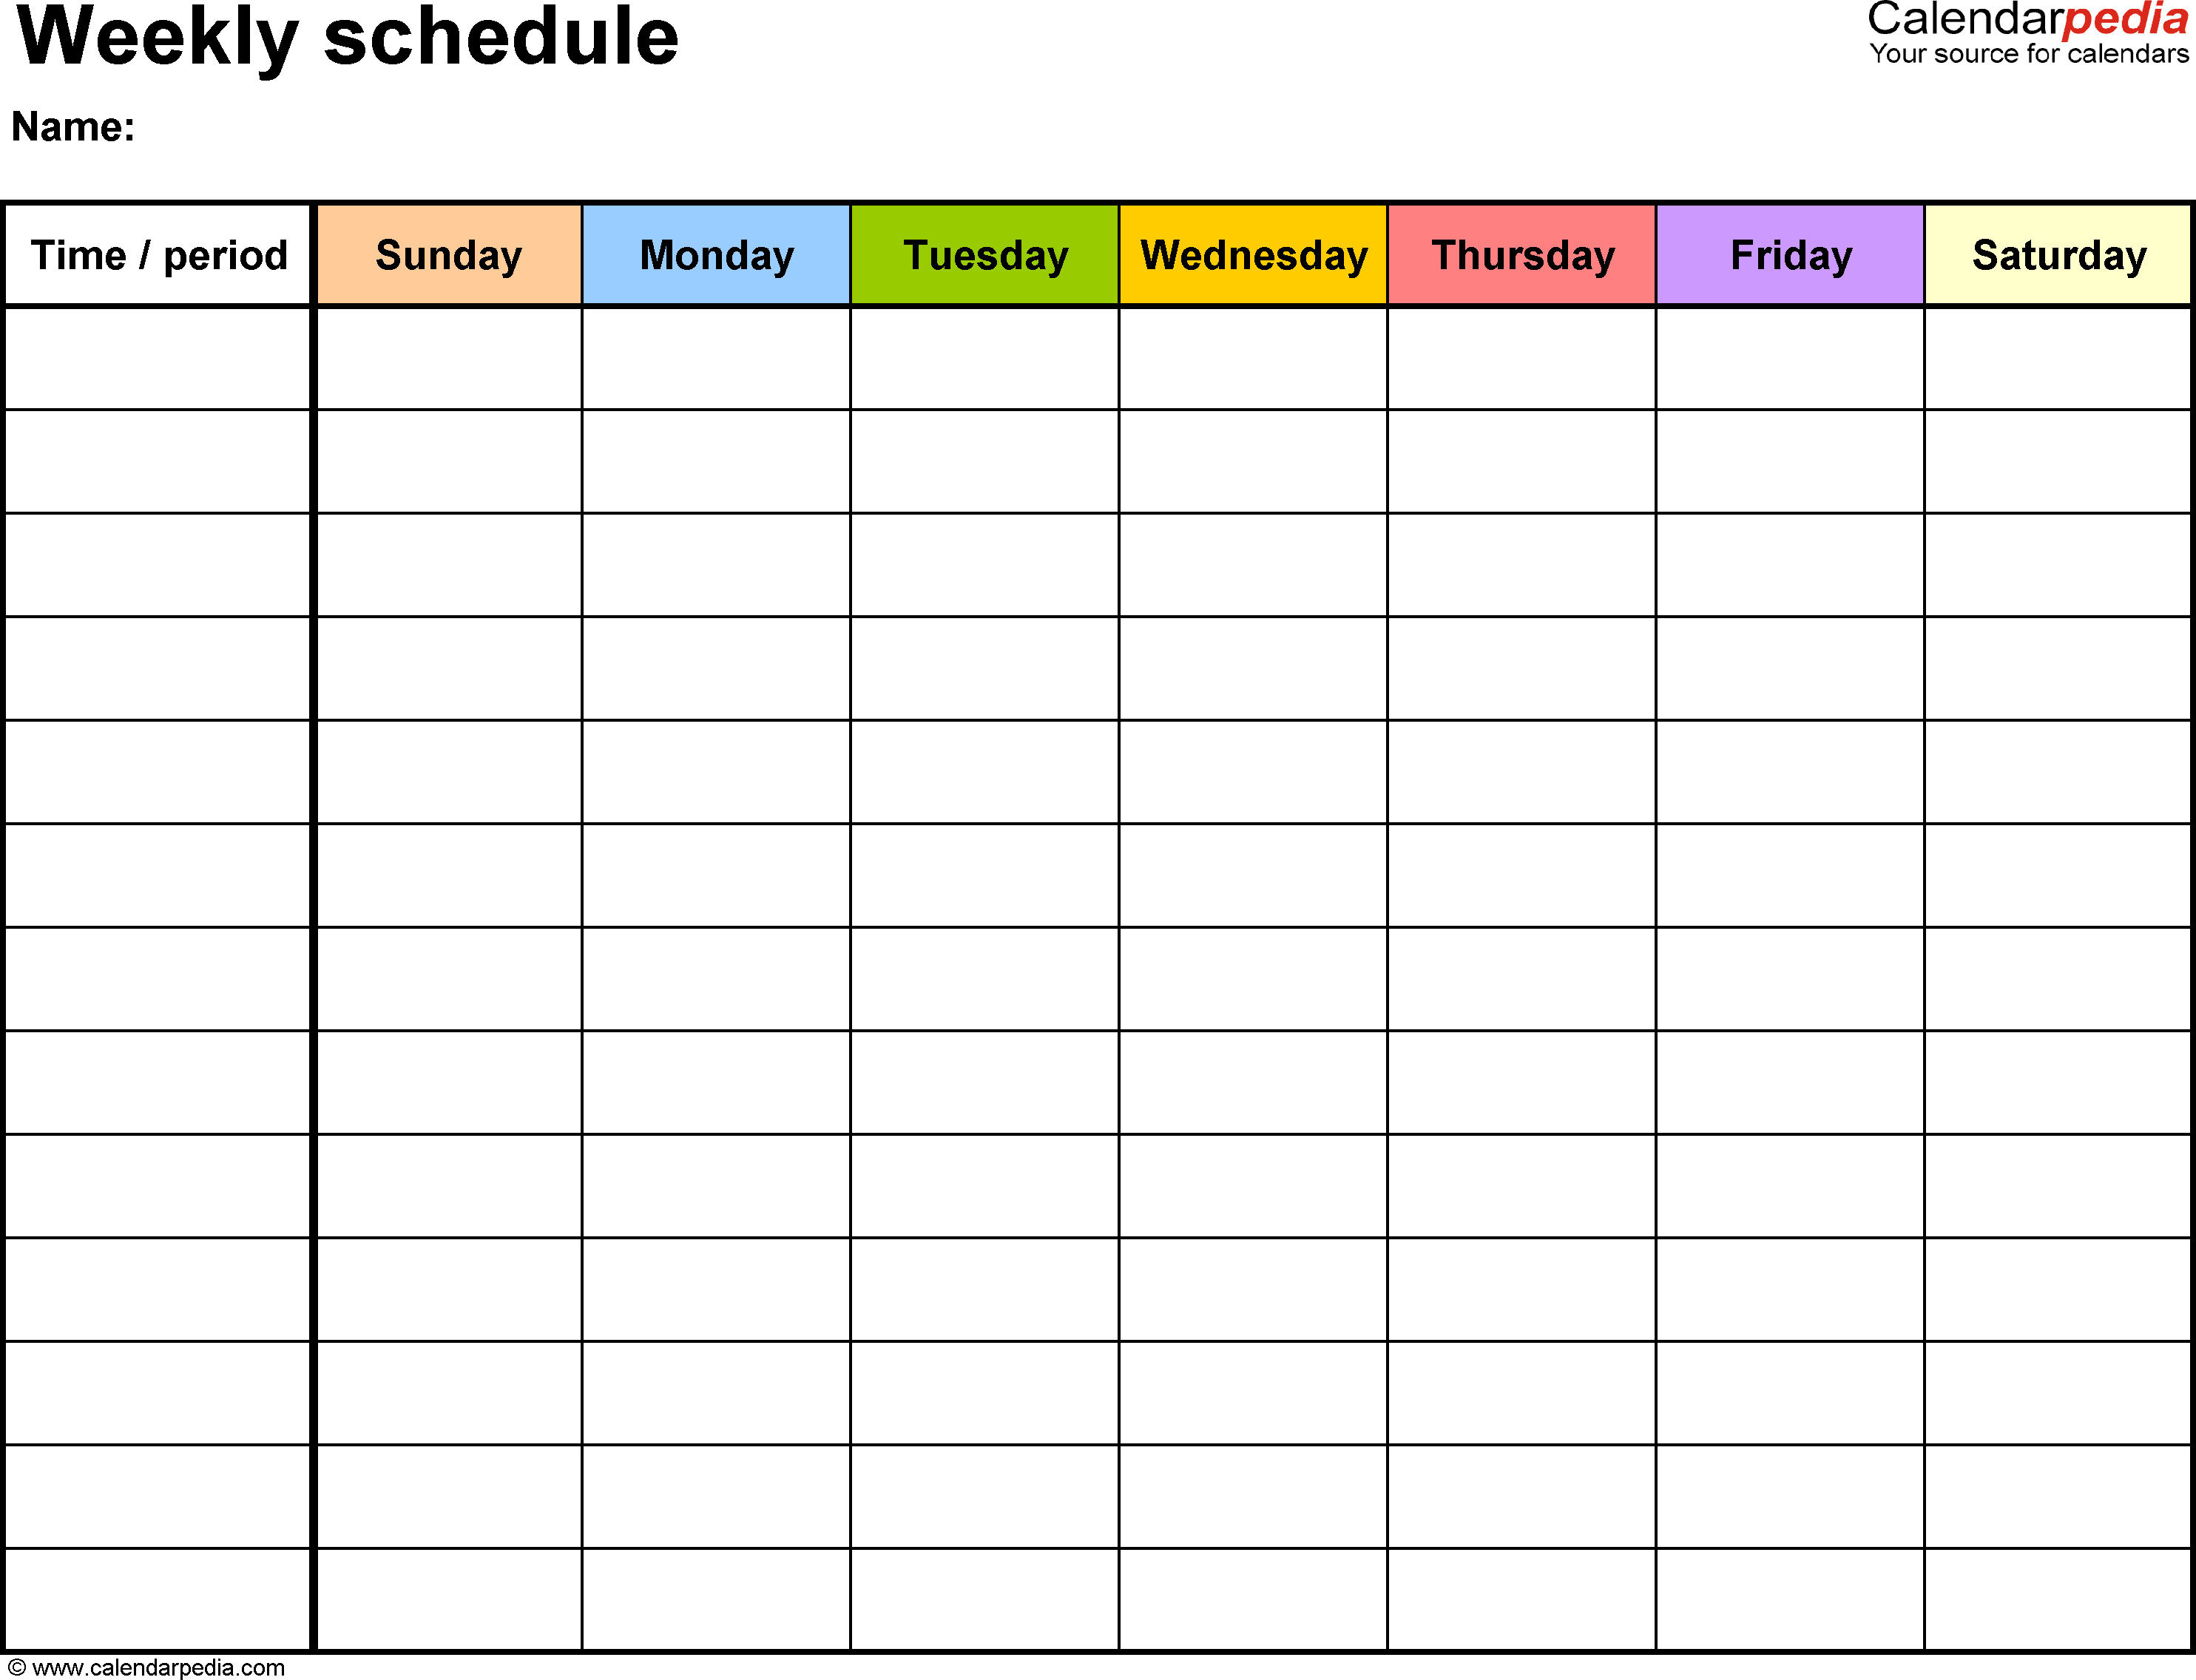 Free Weekly Schedule Templates For Excel - 18 Templates Monday - Friday Schedule Blank Template